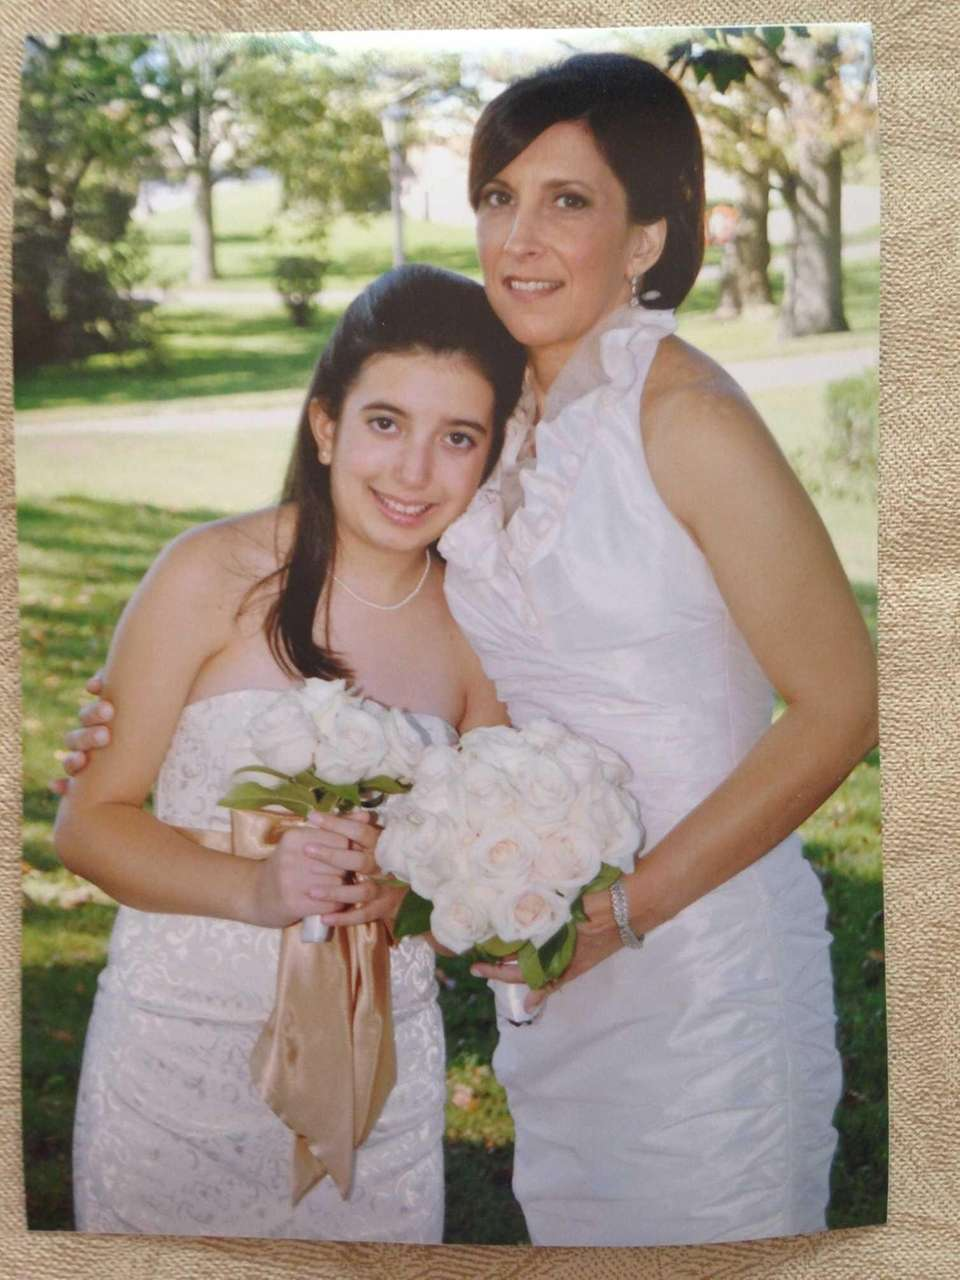 Joanne Larrea with my daughter, Allegra Larrea